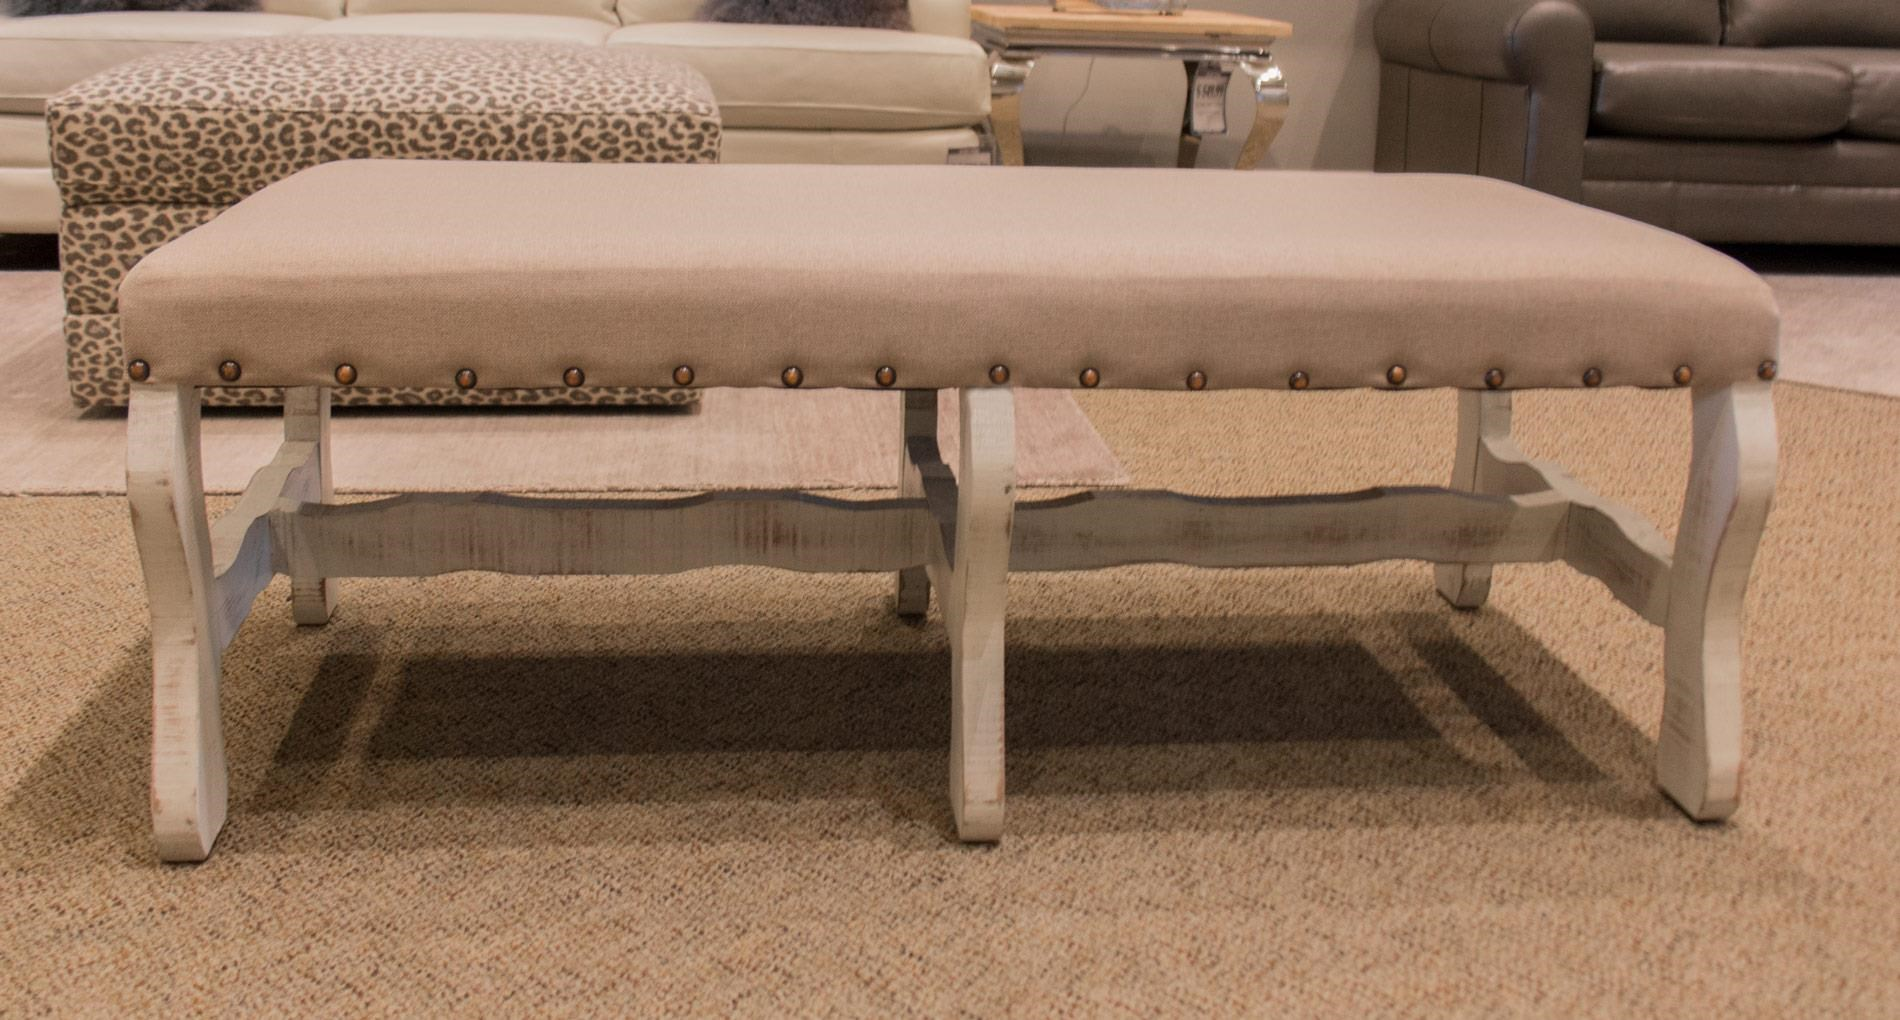 Vintage Accents Linen Bench in White - Item Number: F-MICBAN86-NERO-WHITE